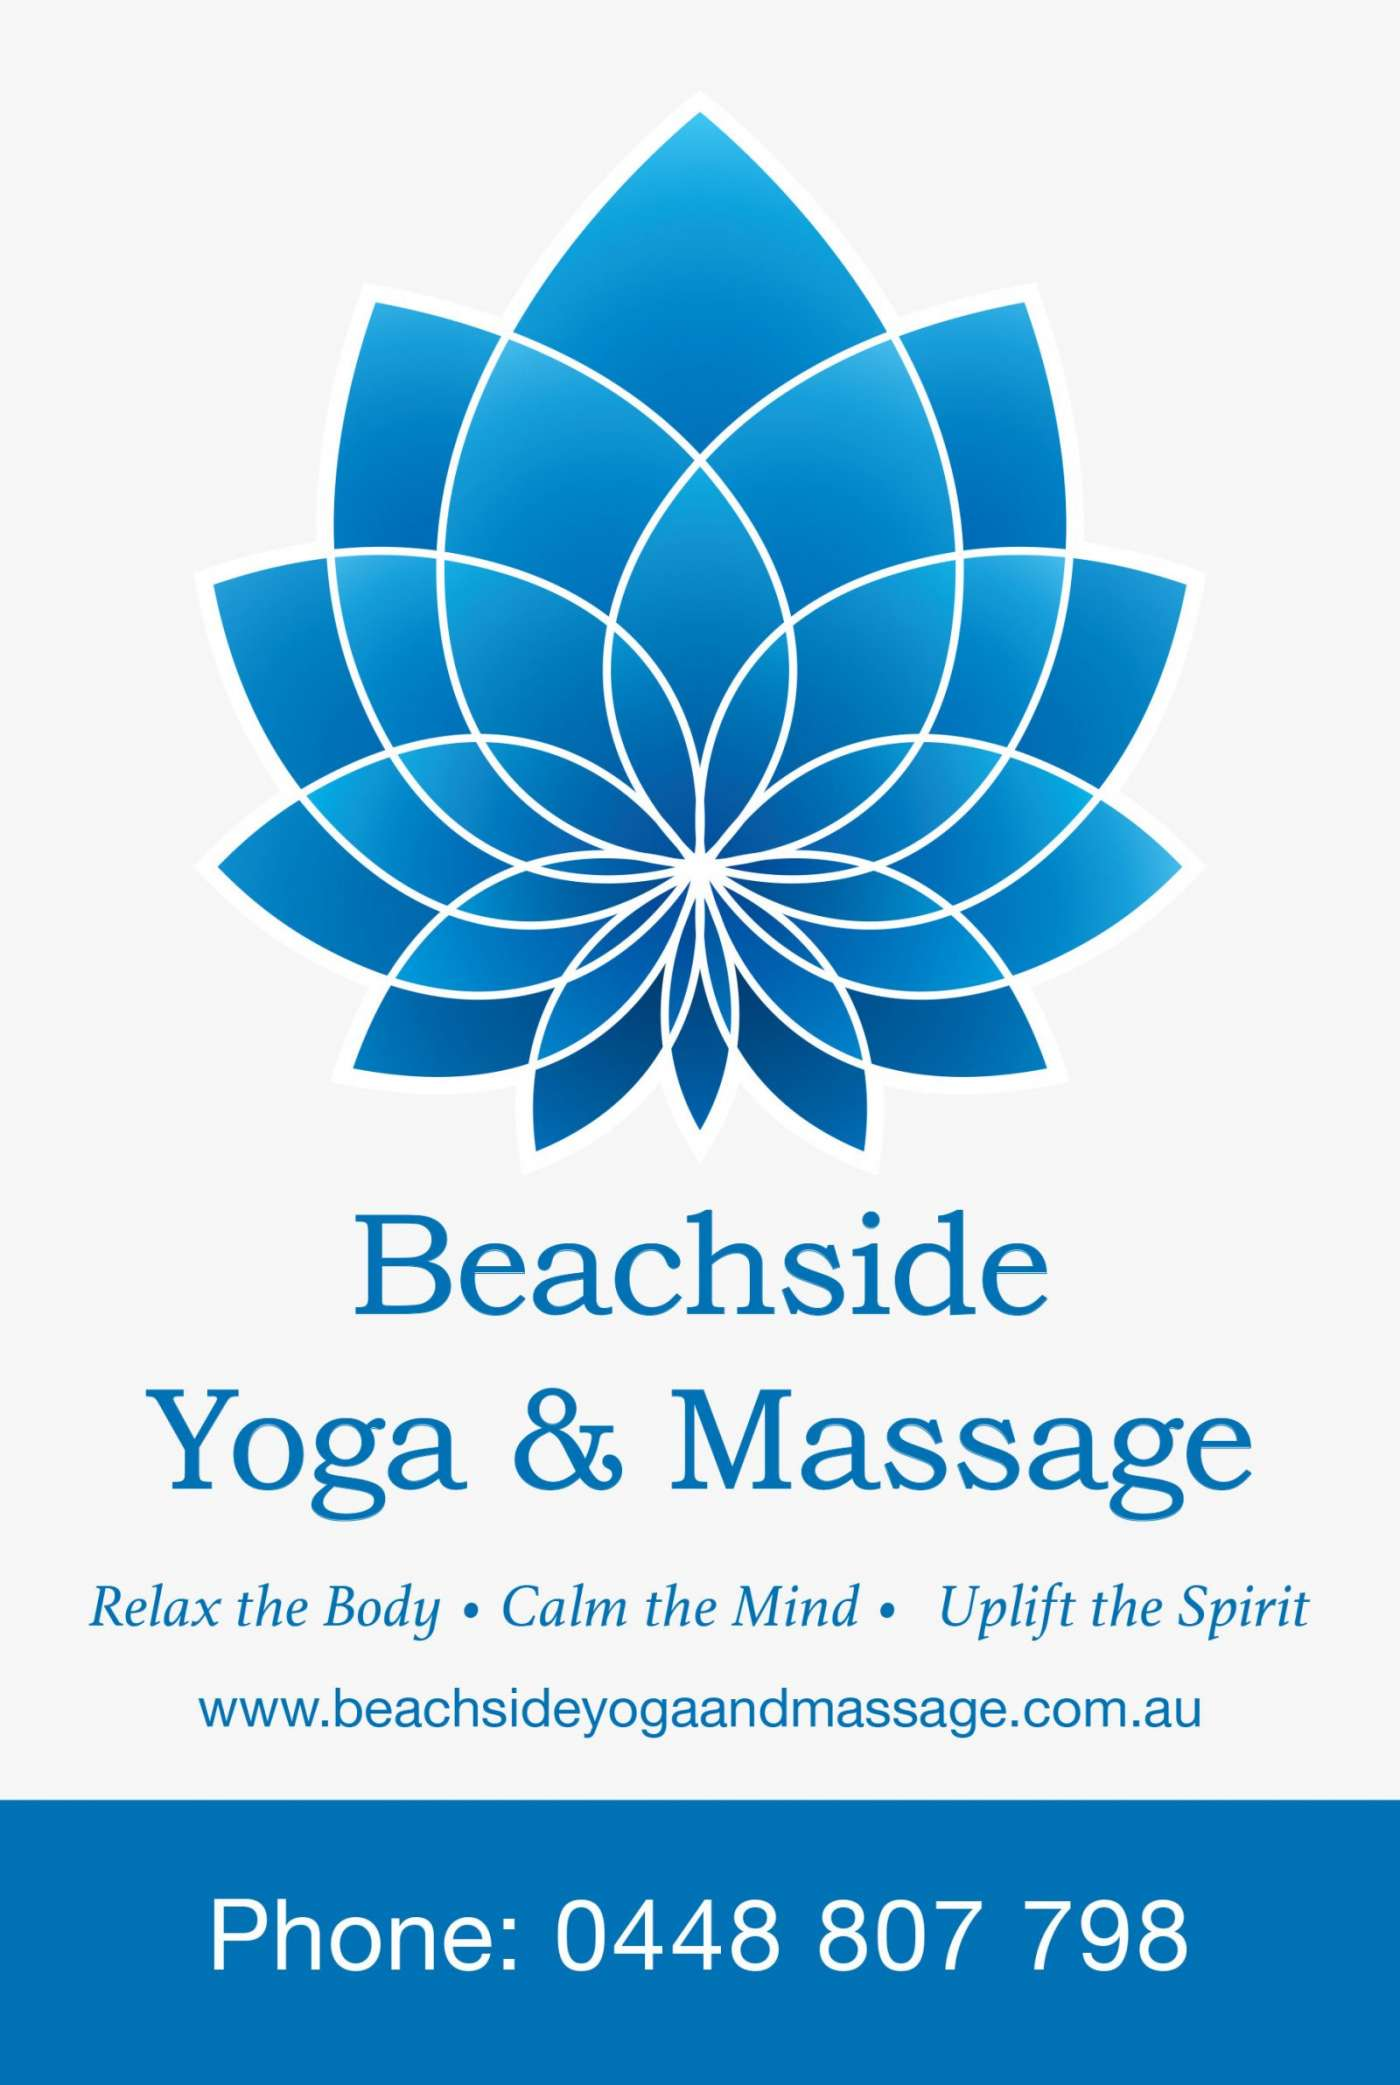 Signage for Beachside Yoga & Massage